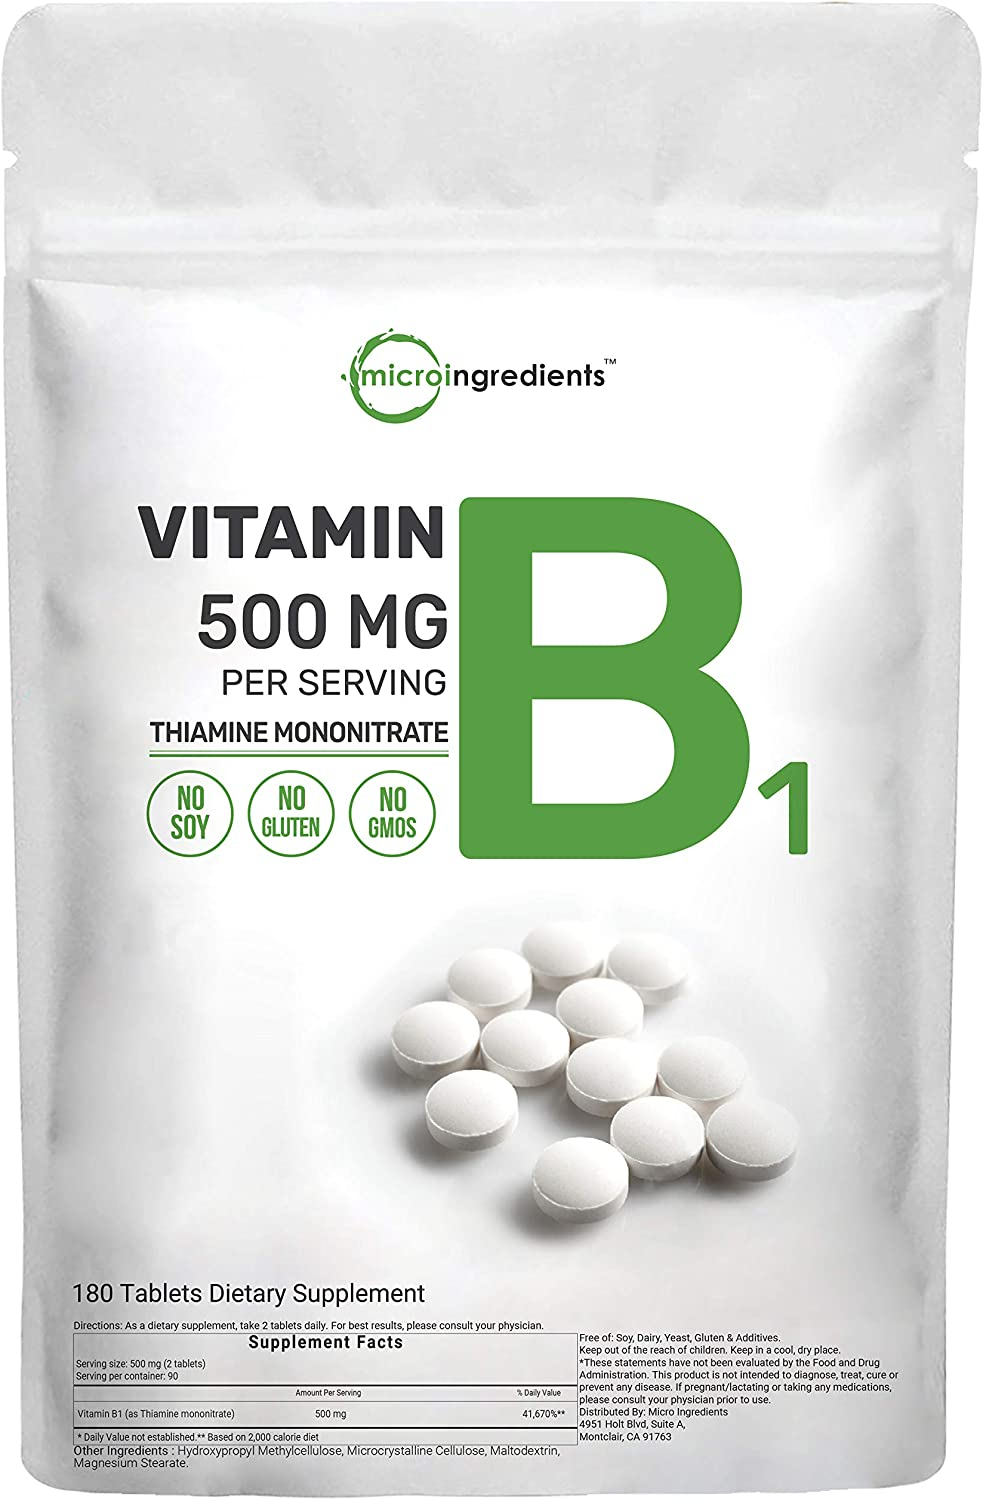 Micro Ingredients Vitamin B1 Thiamine Supplements, 500mg Per Serving, 180 Tablets, Promote Energy Production and Nervous System Health, No GMOs, No Soy